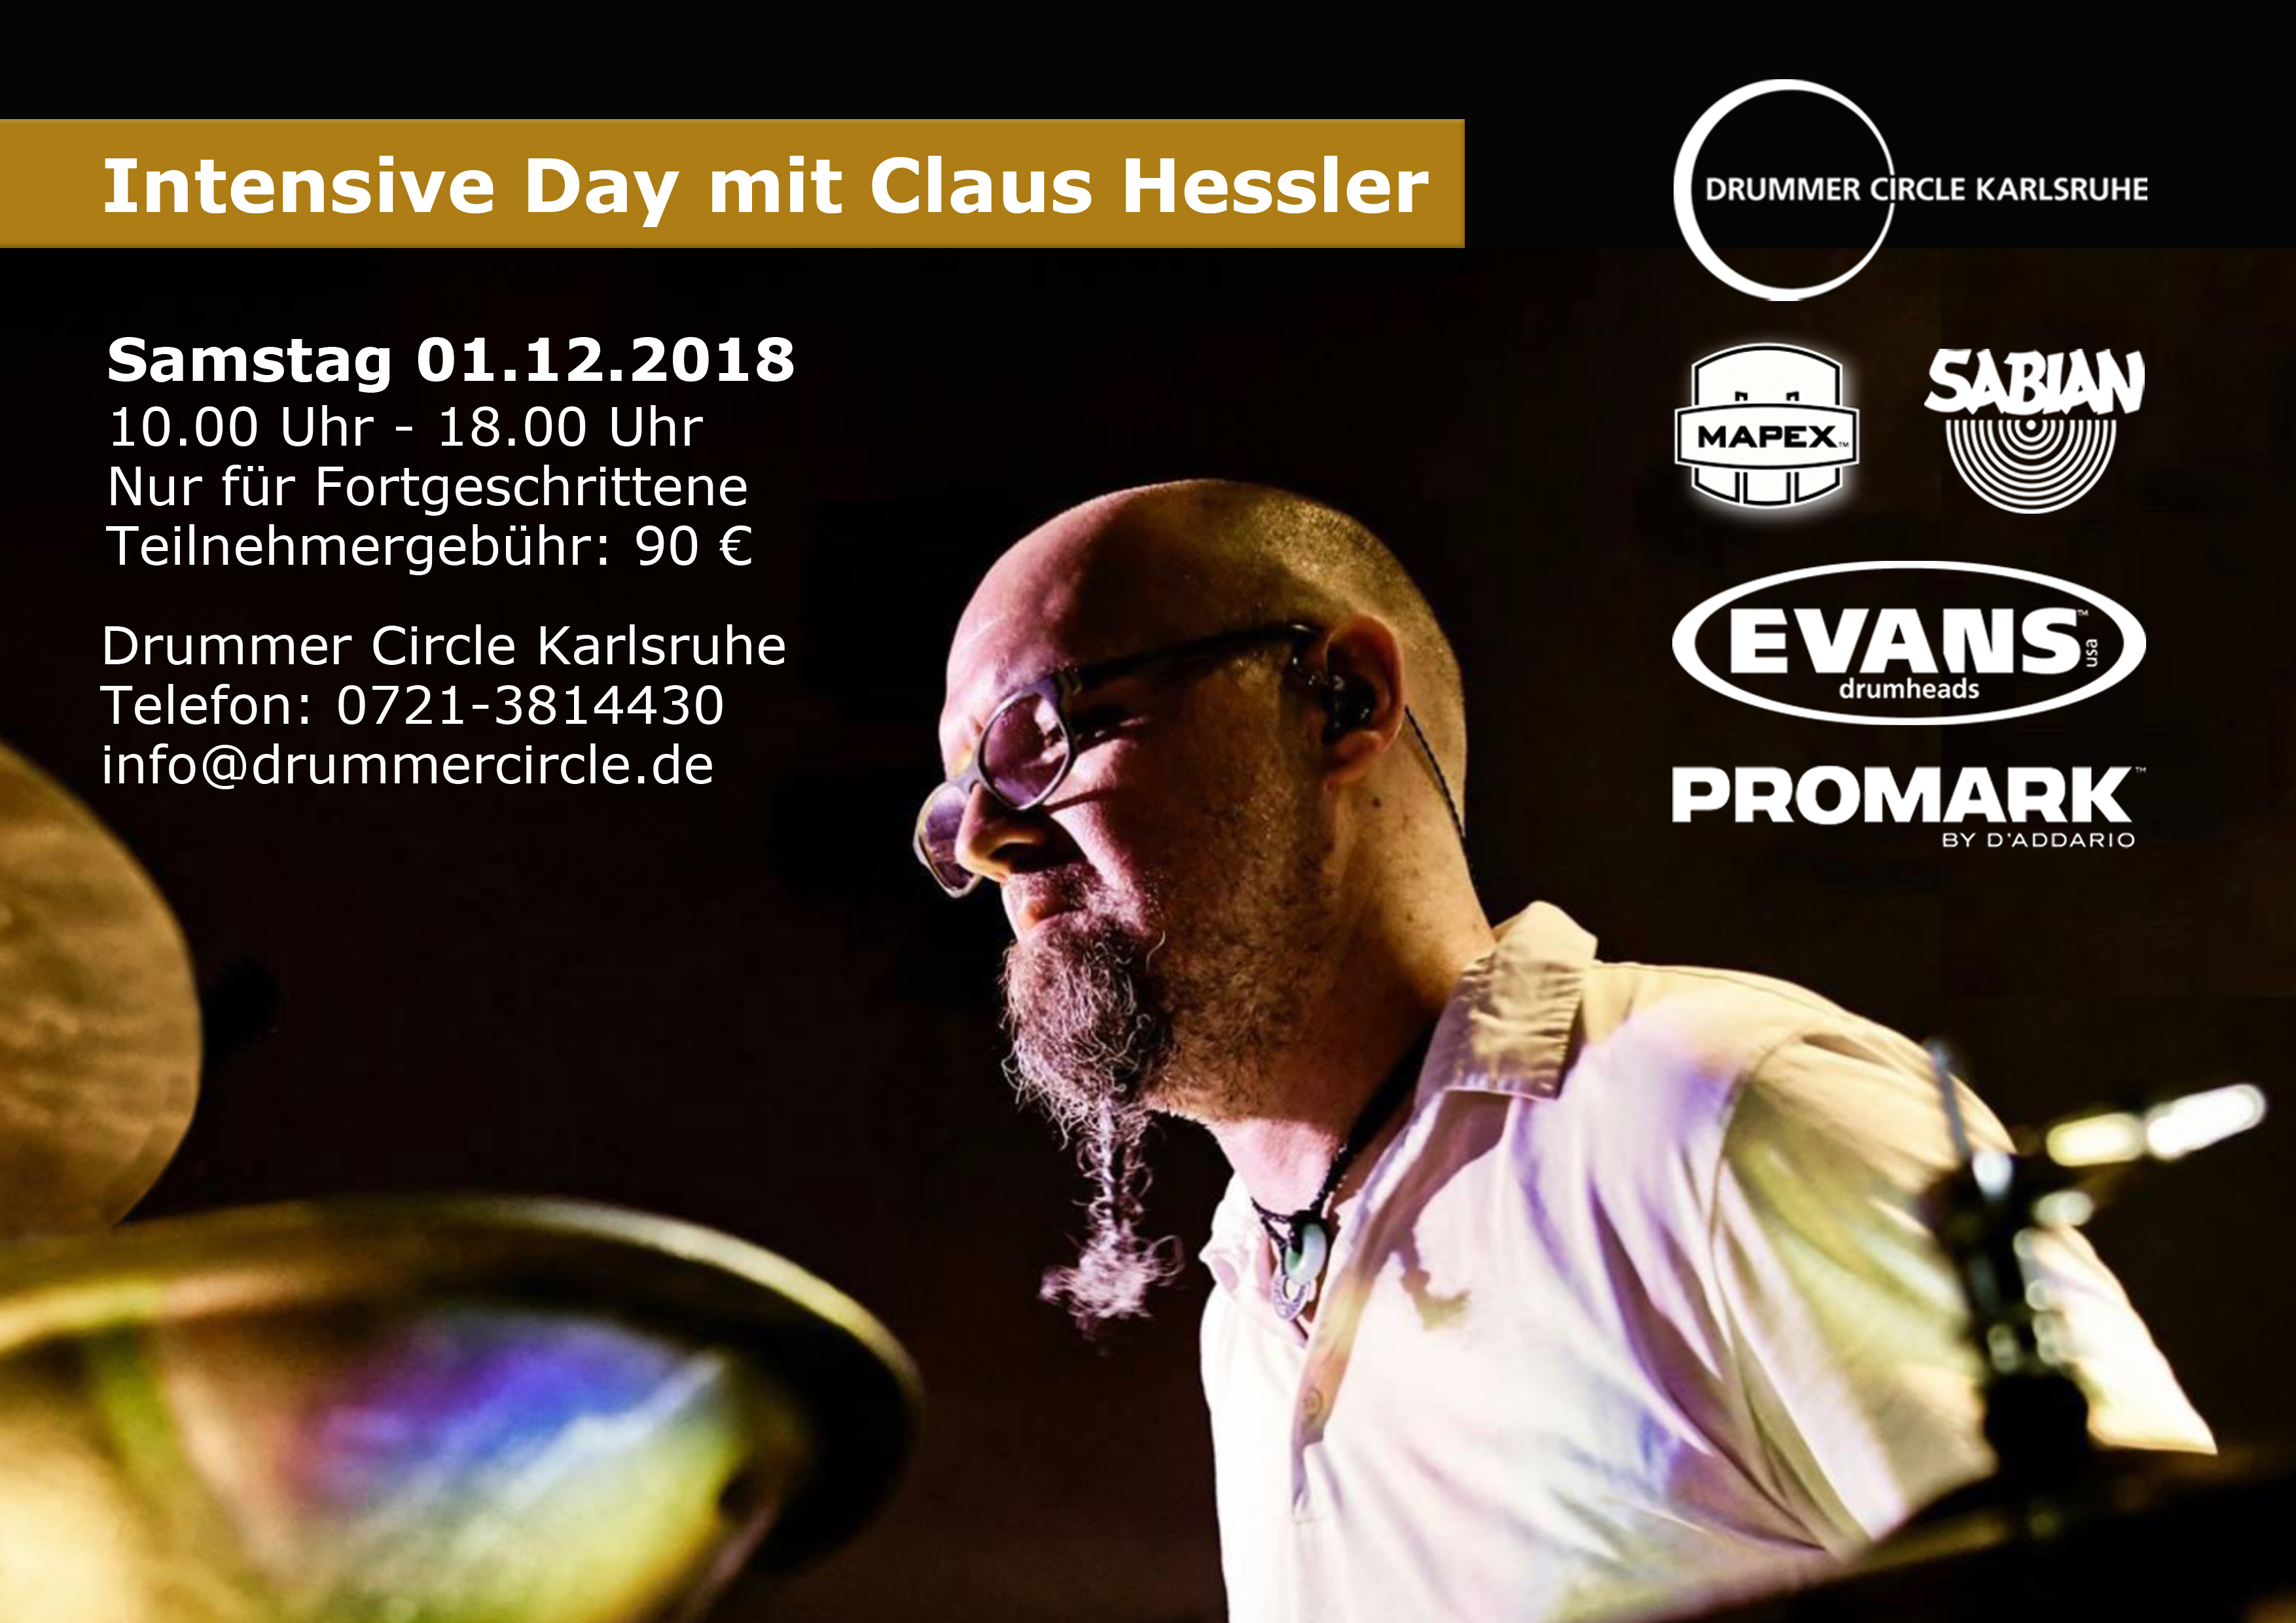 Intensive Day mit Claus Hessler 2018